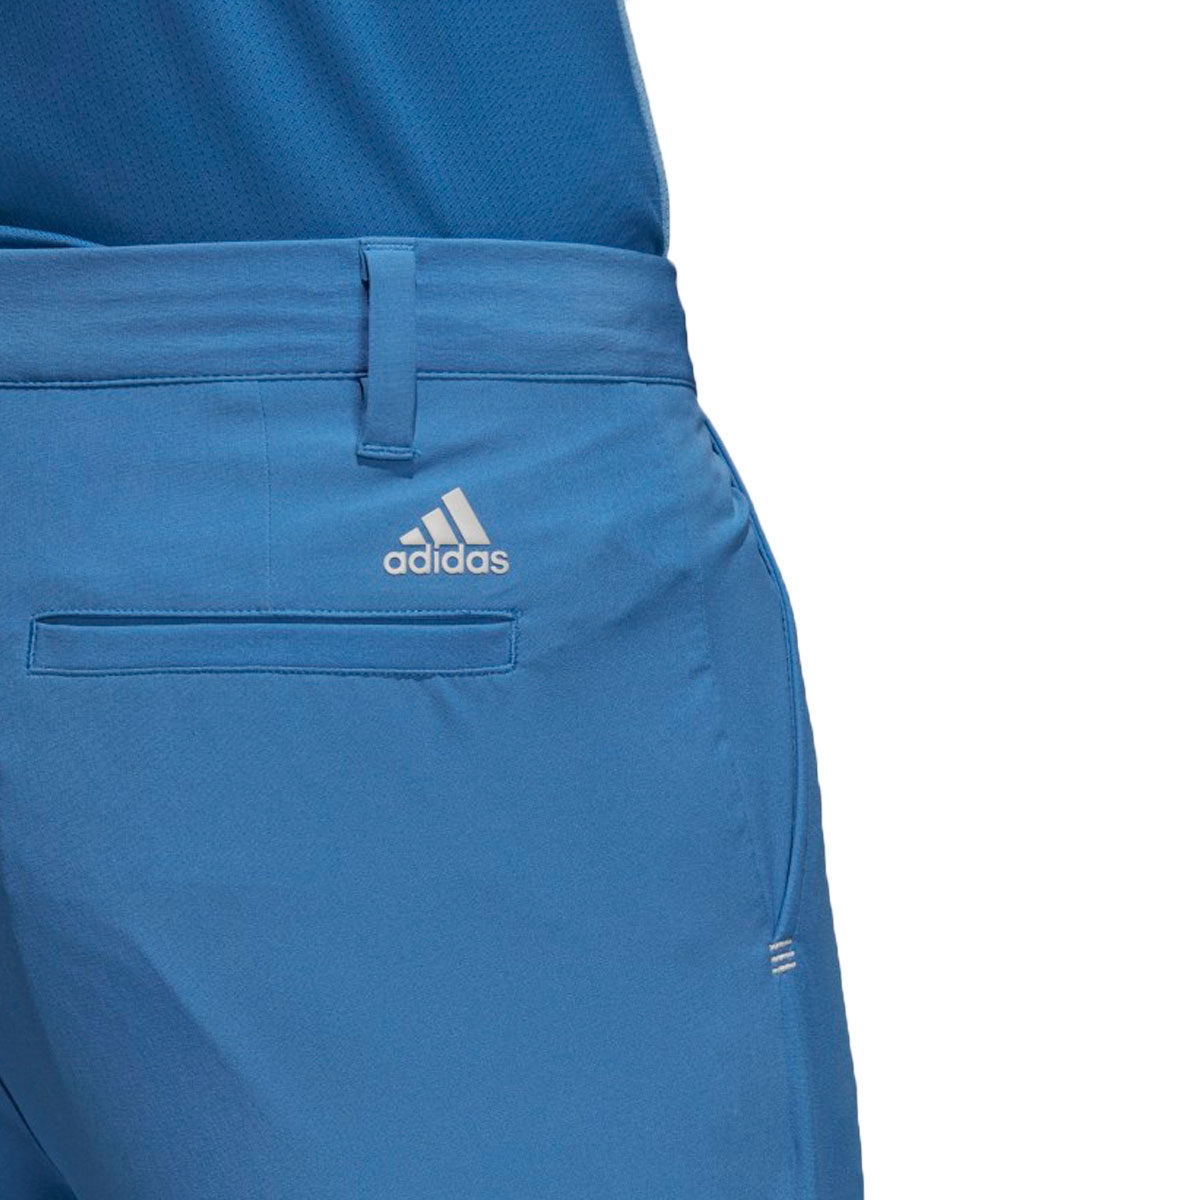 adidas-Golf-Mens-Ultimate365-10-5-034-Inseam-Shorts-47-OFF-RRP thumbnail 15